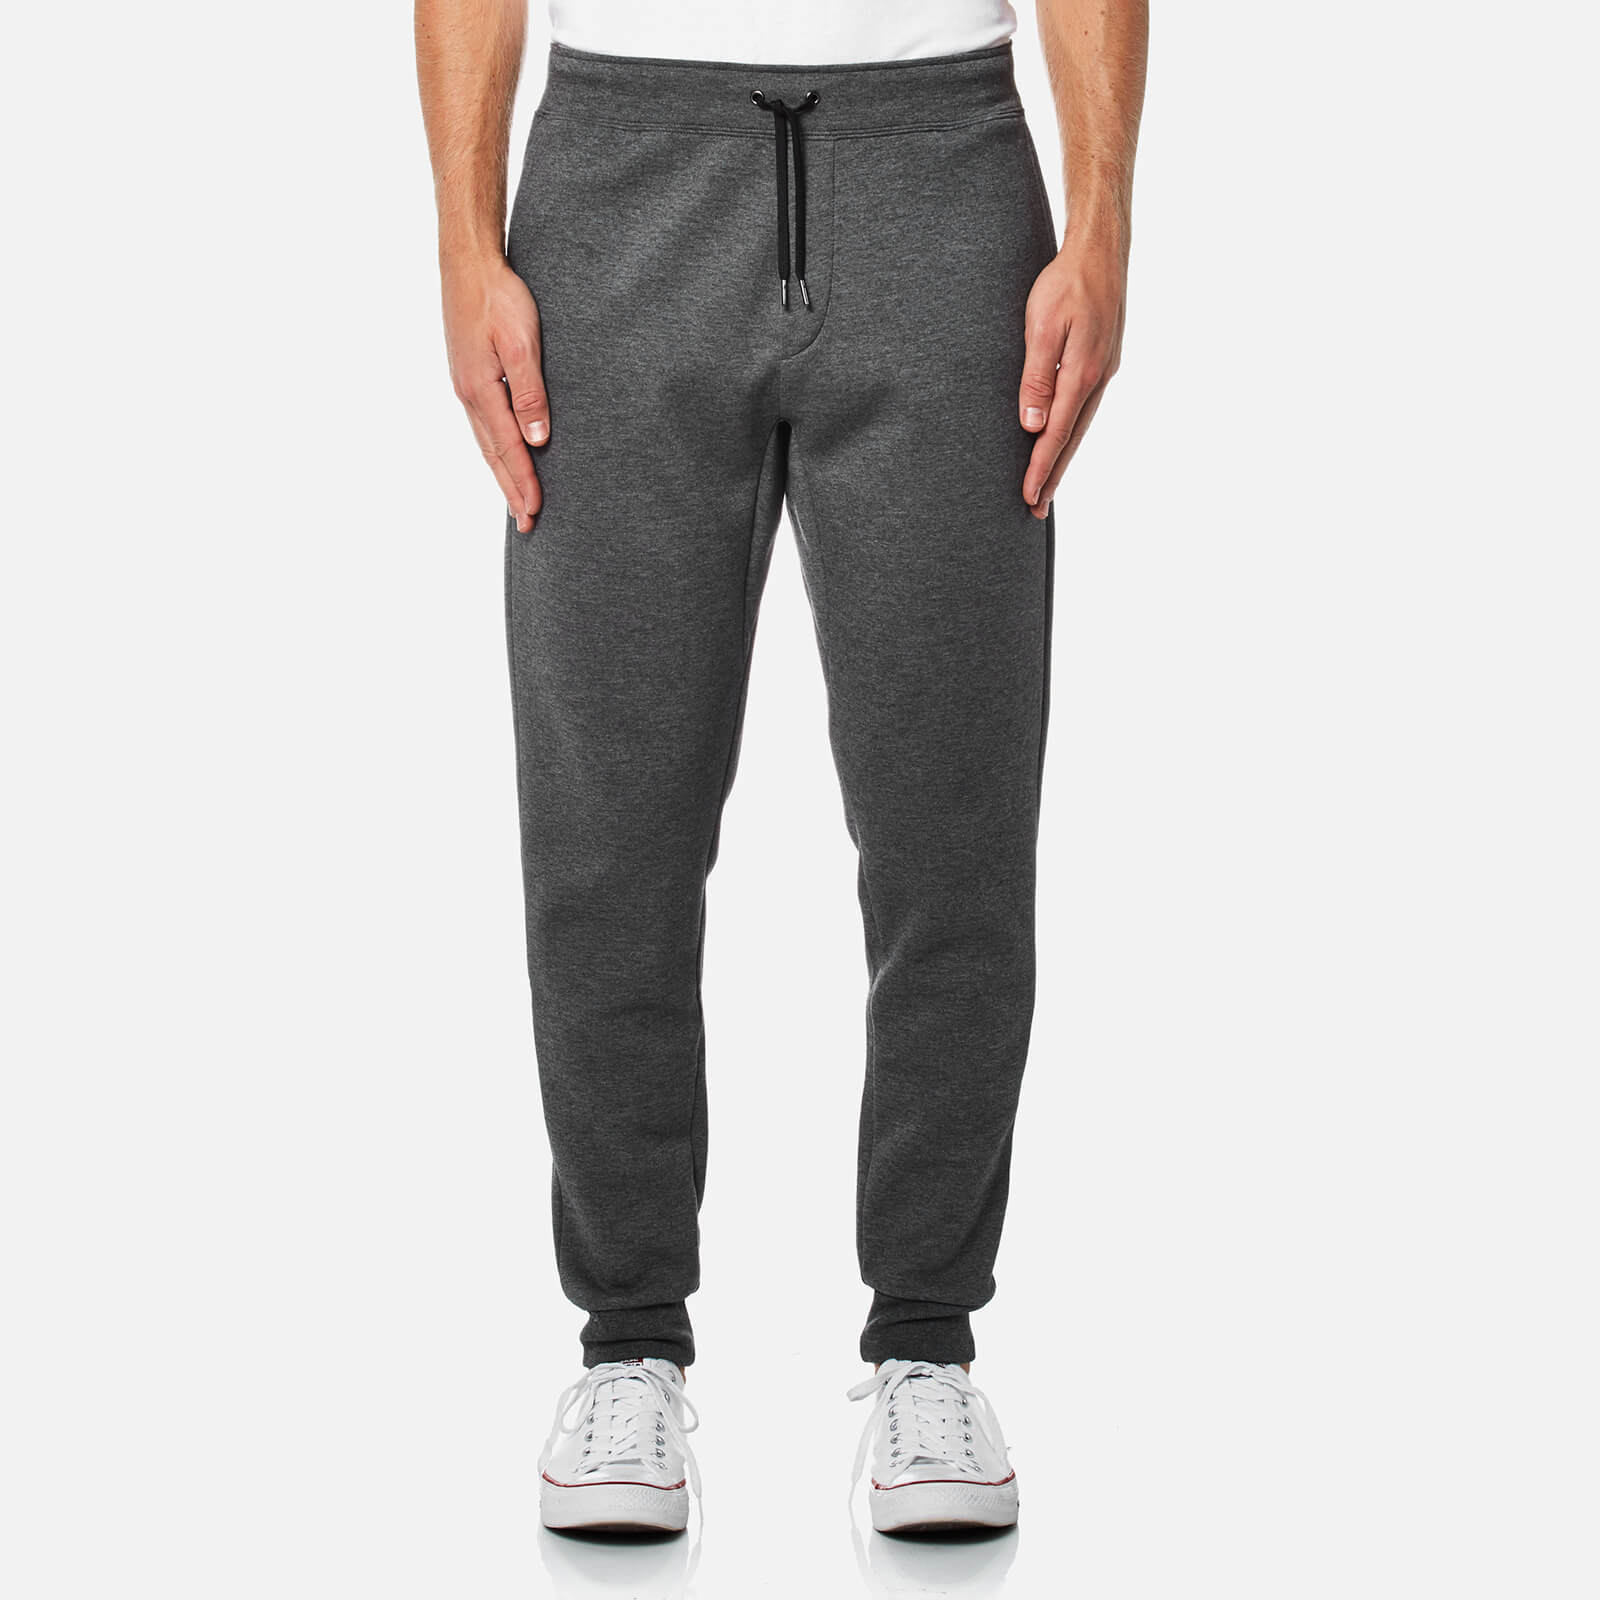 583f4a01ef8a Polo Ralph Lauren Men s Double Knit Tech Pants - Charcoal - Free UK  Delivery over £50